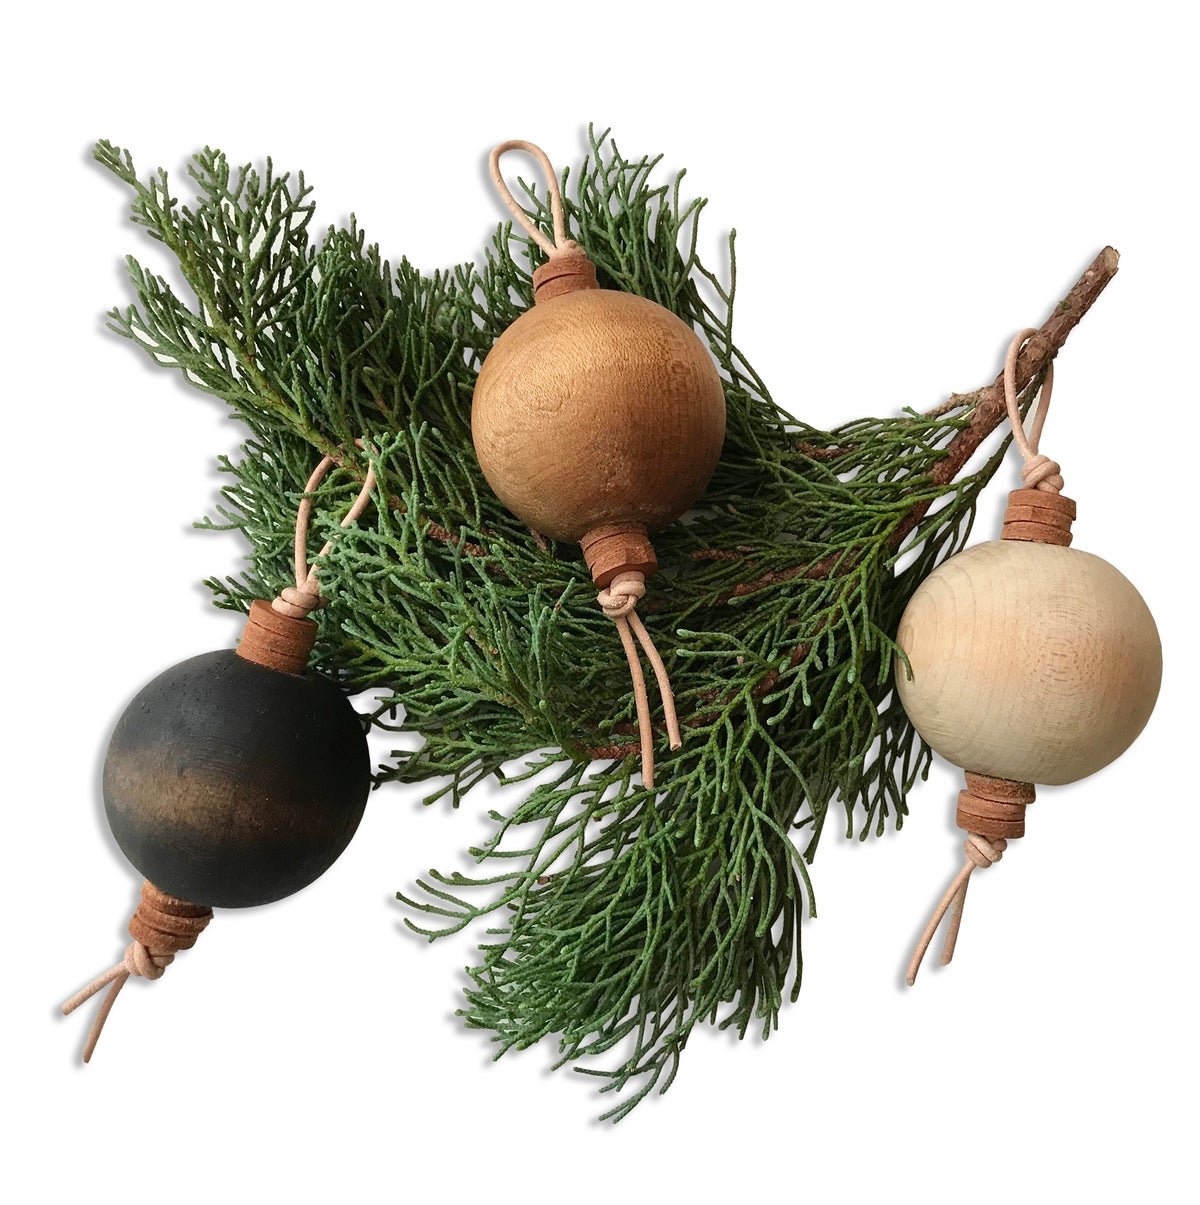 Image of VINTAGE WOODEN BALL ORNAMENTS - SET of 3